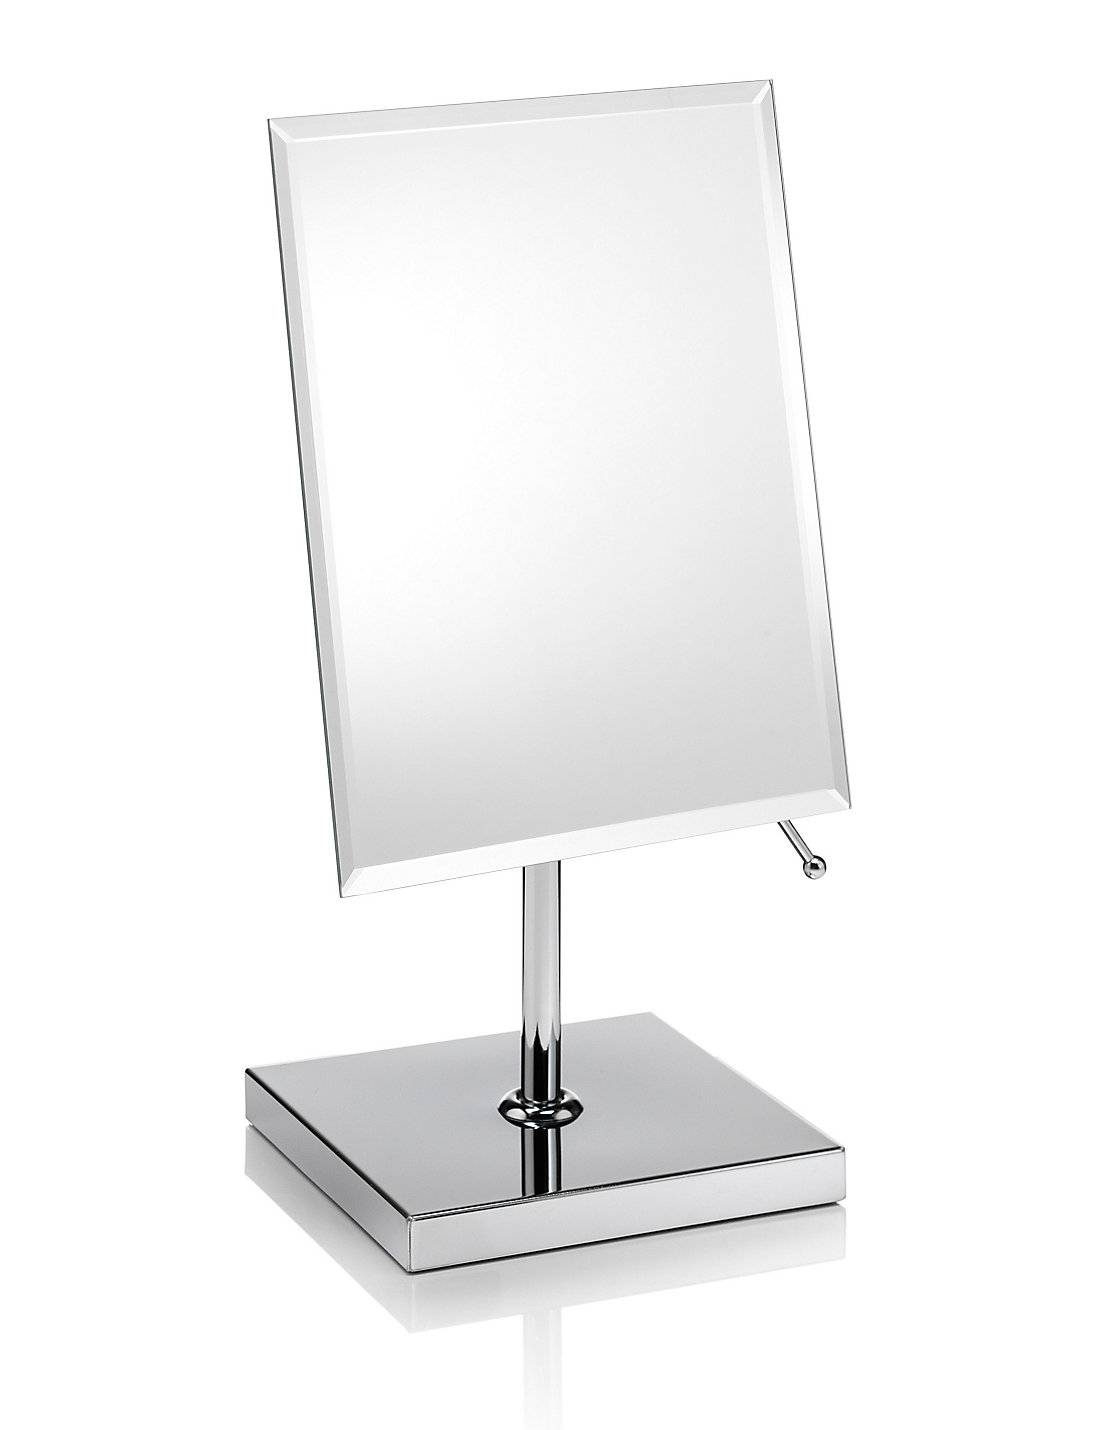 Large Free Standing Bathroom Mirrors | Home for Free Standing Mirrors (Image 14 of 25)